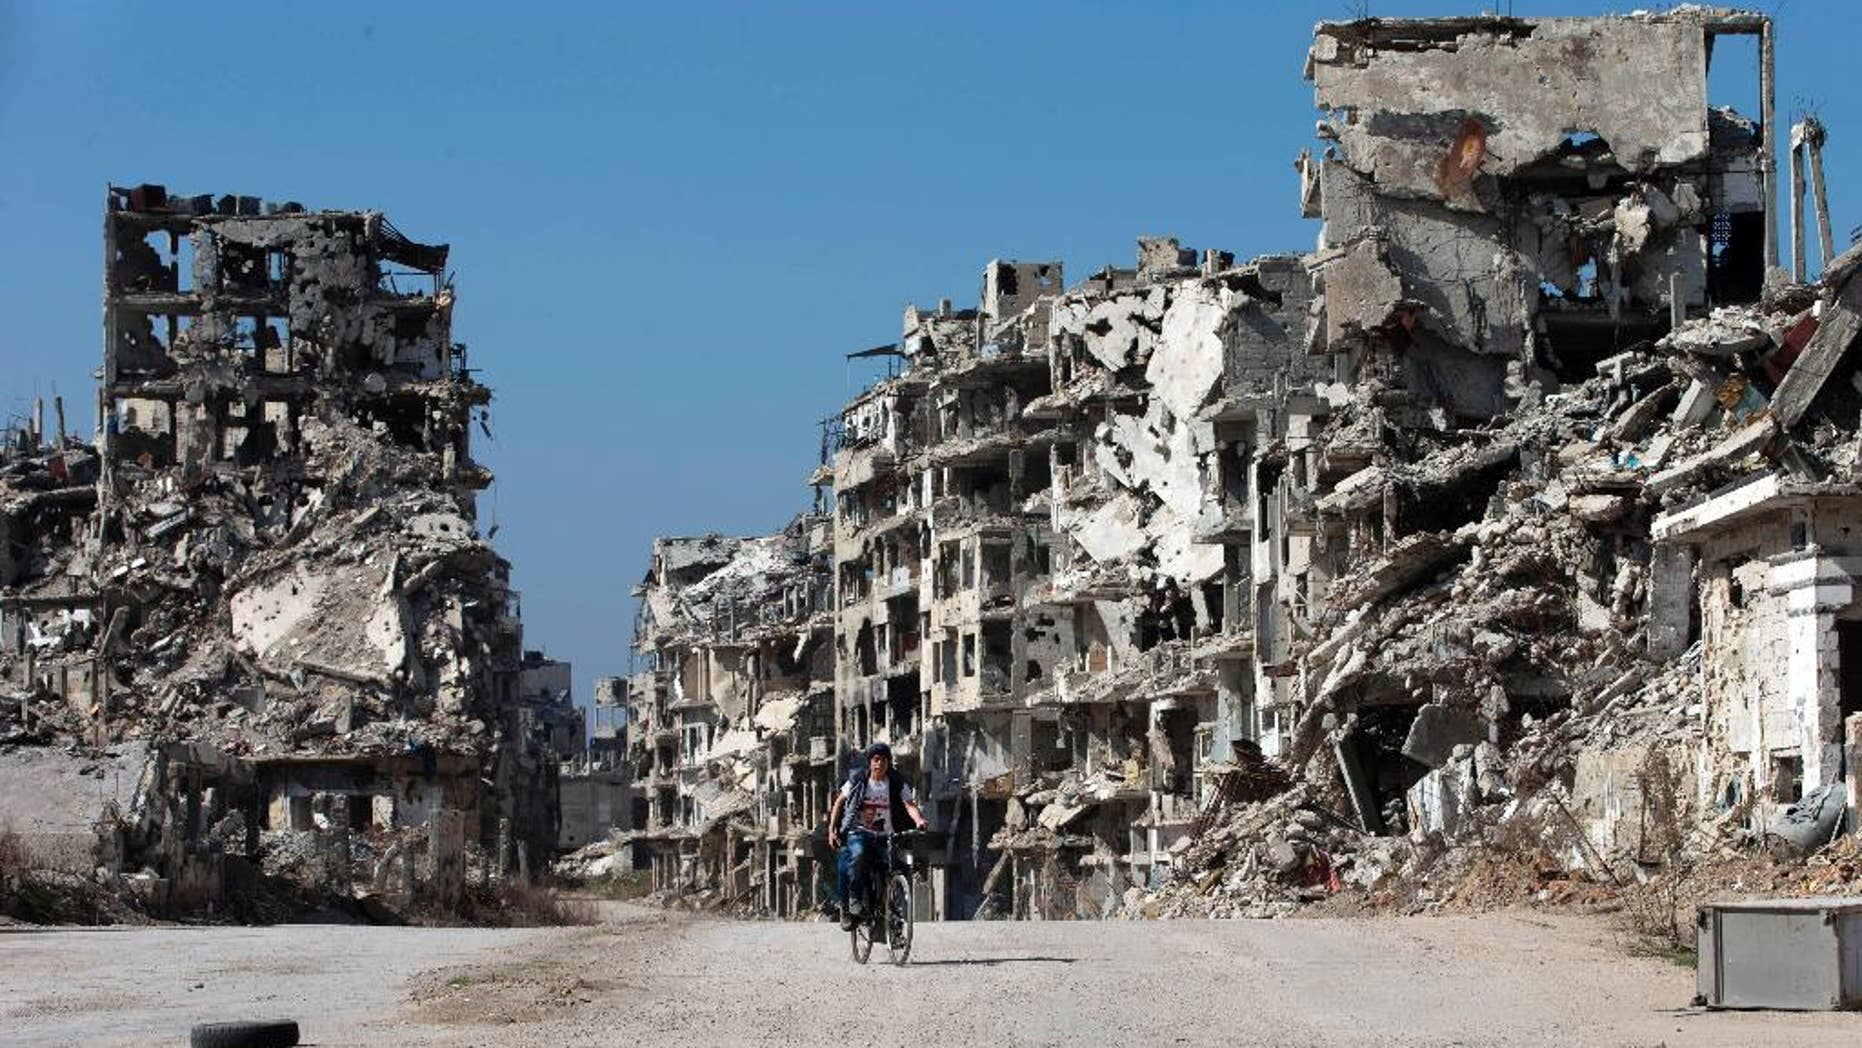 FILE -- In this February 26, 2016, file photo, a Syrian boy rides a bicycle through a devastated part of the old city of Homs, Syria. Syrian opposition fighters will be allowed to leave the last rebel-held neighborhood in the city of Homs under a Russia-backed deal signed on Monday, March 13, 2017, a Syrian official and an activist said.(AP Photo/Hassan Ammar, File)